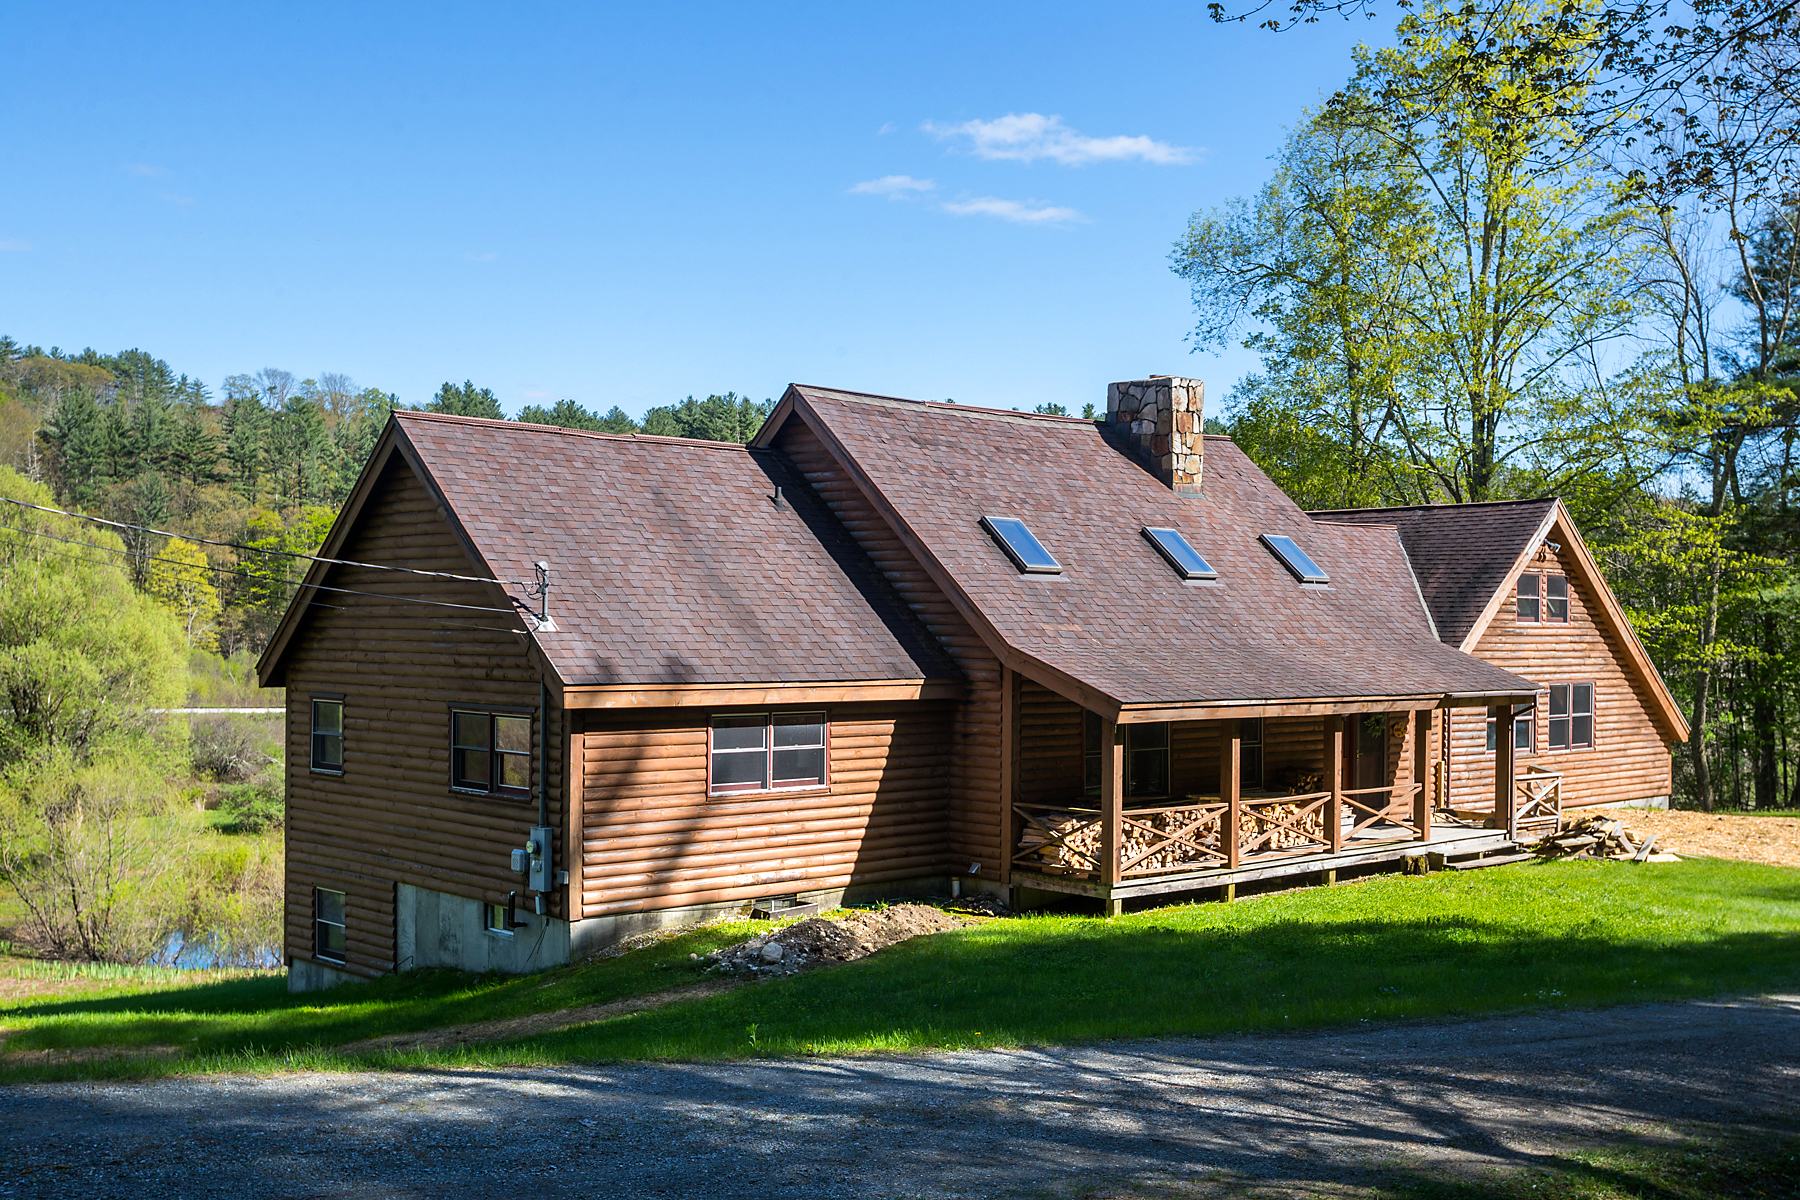 Single Family Homes for Sale at Log Cabin 18 acres Views Battenkill frontage 6180 Vt Route 7a Sunderland, Vermont 05250 United States